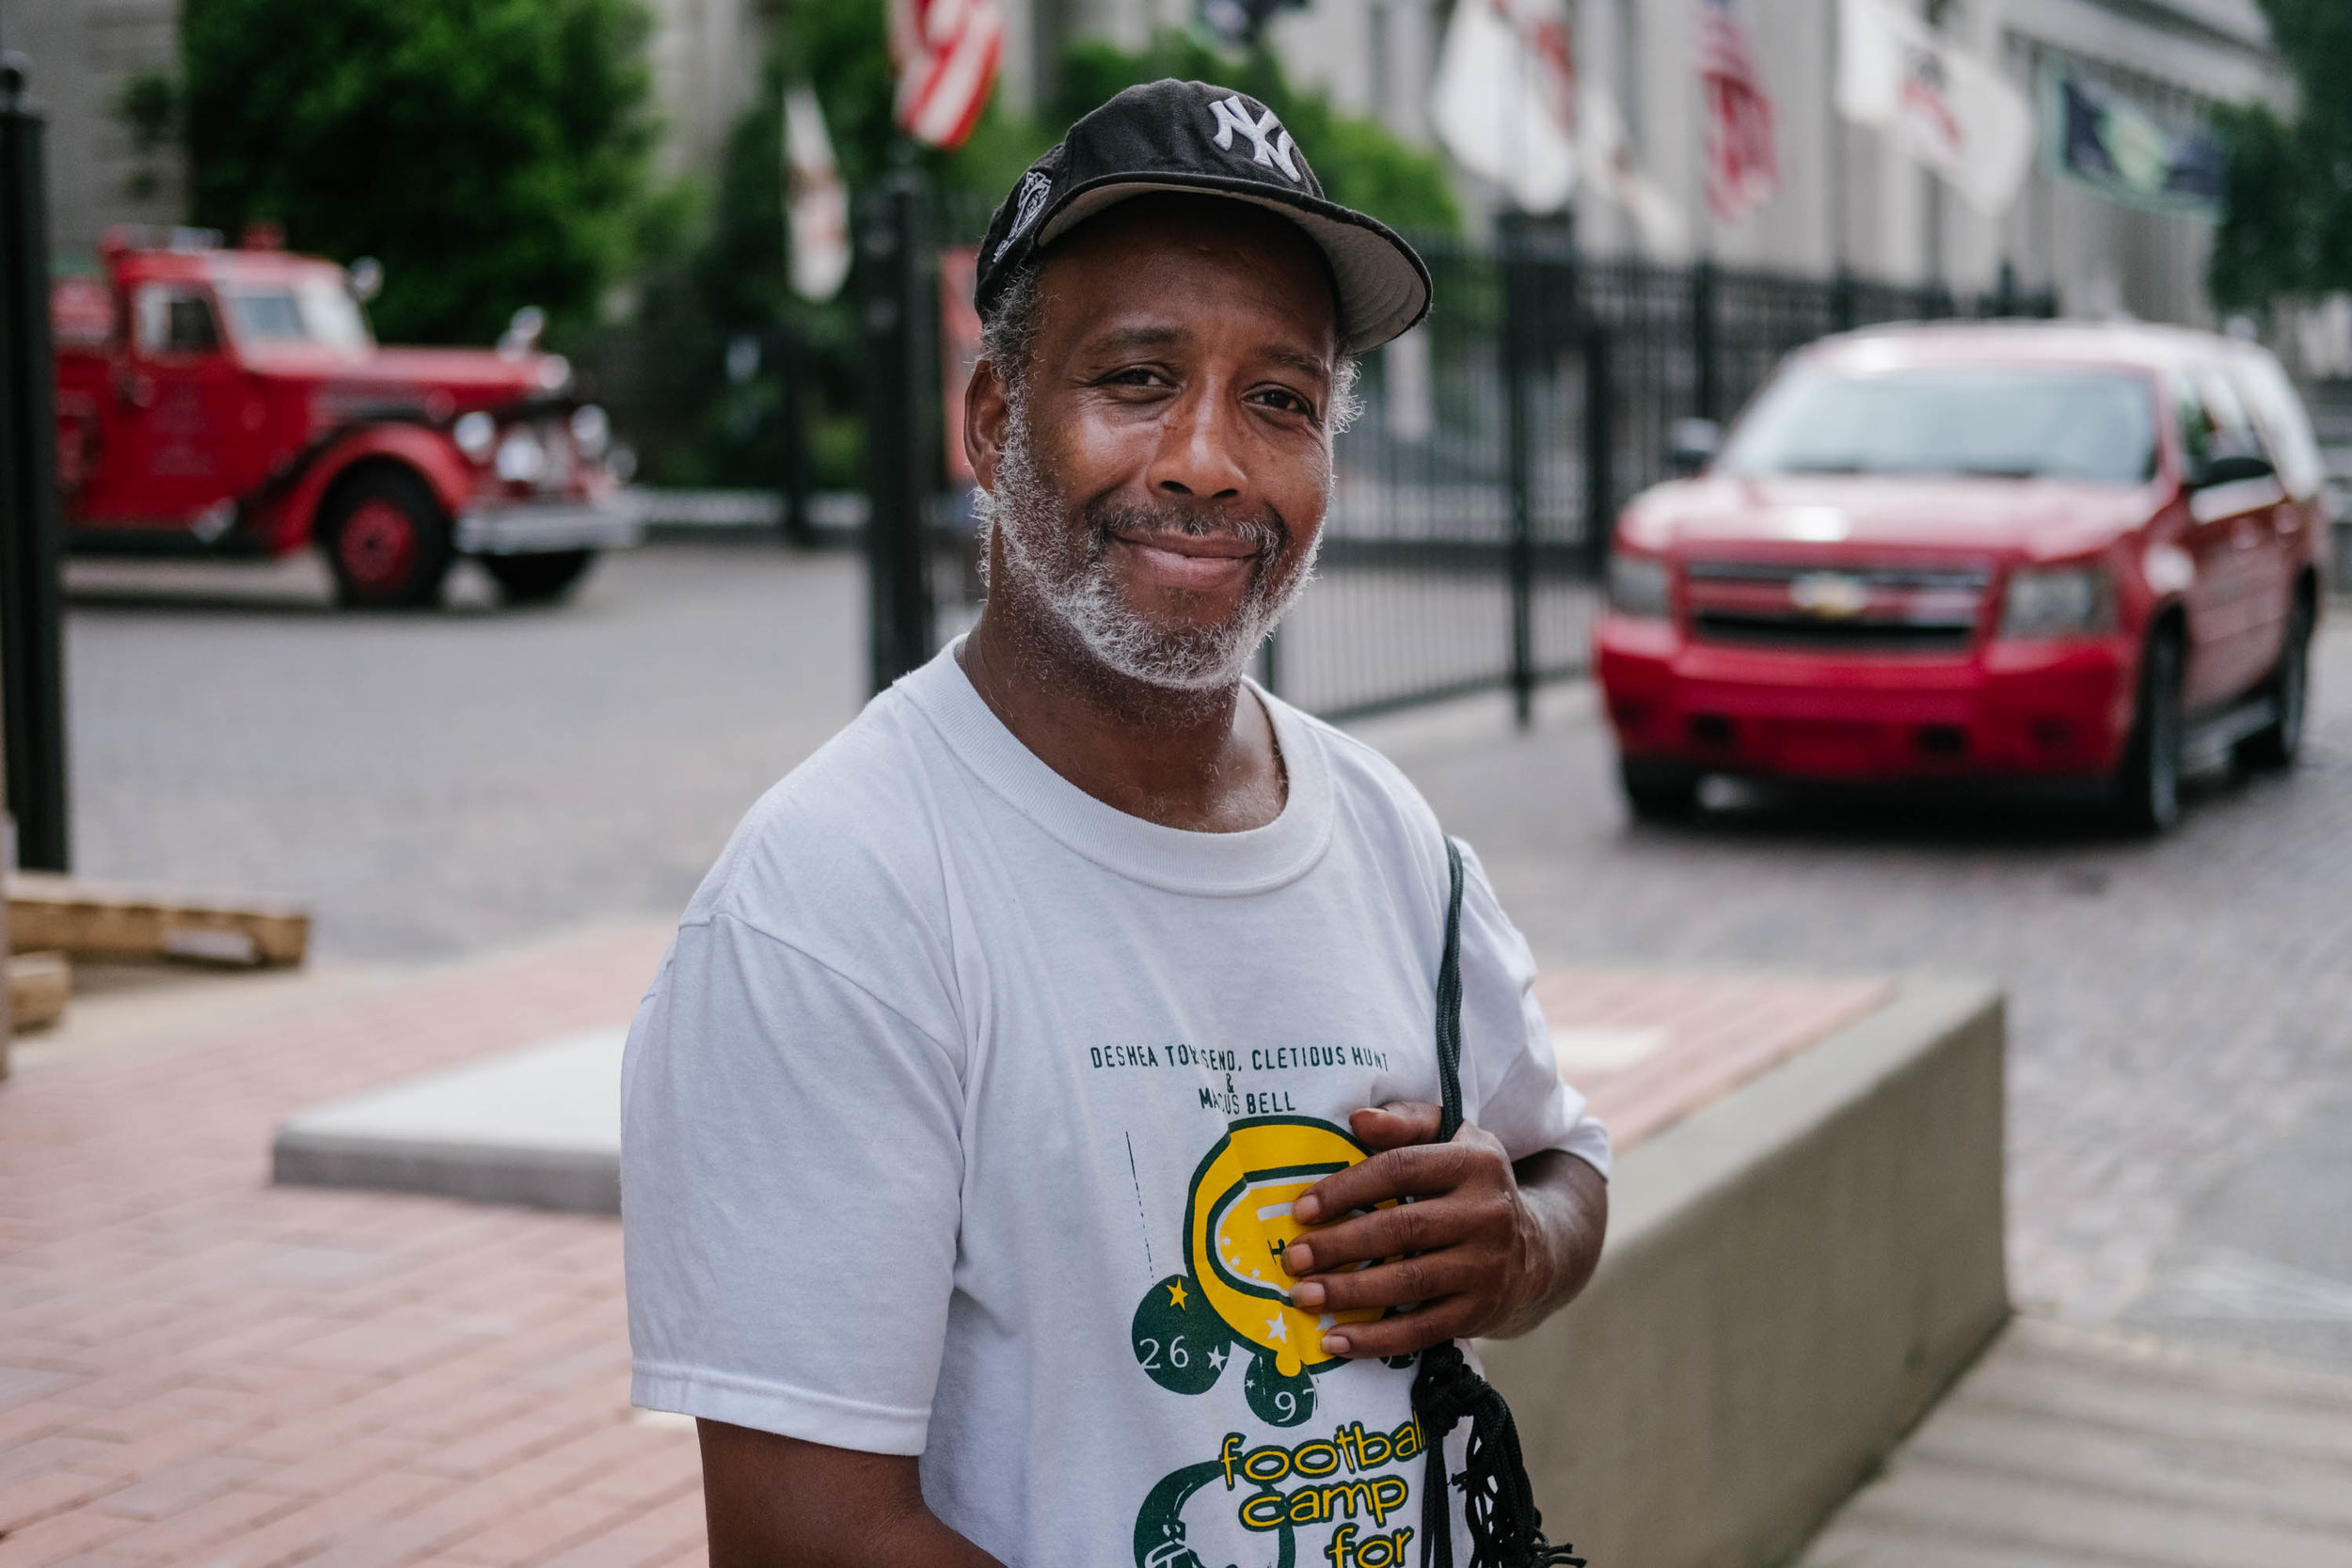 Patrick, a homeless man from NYC, June 19, 2018.